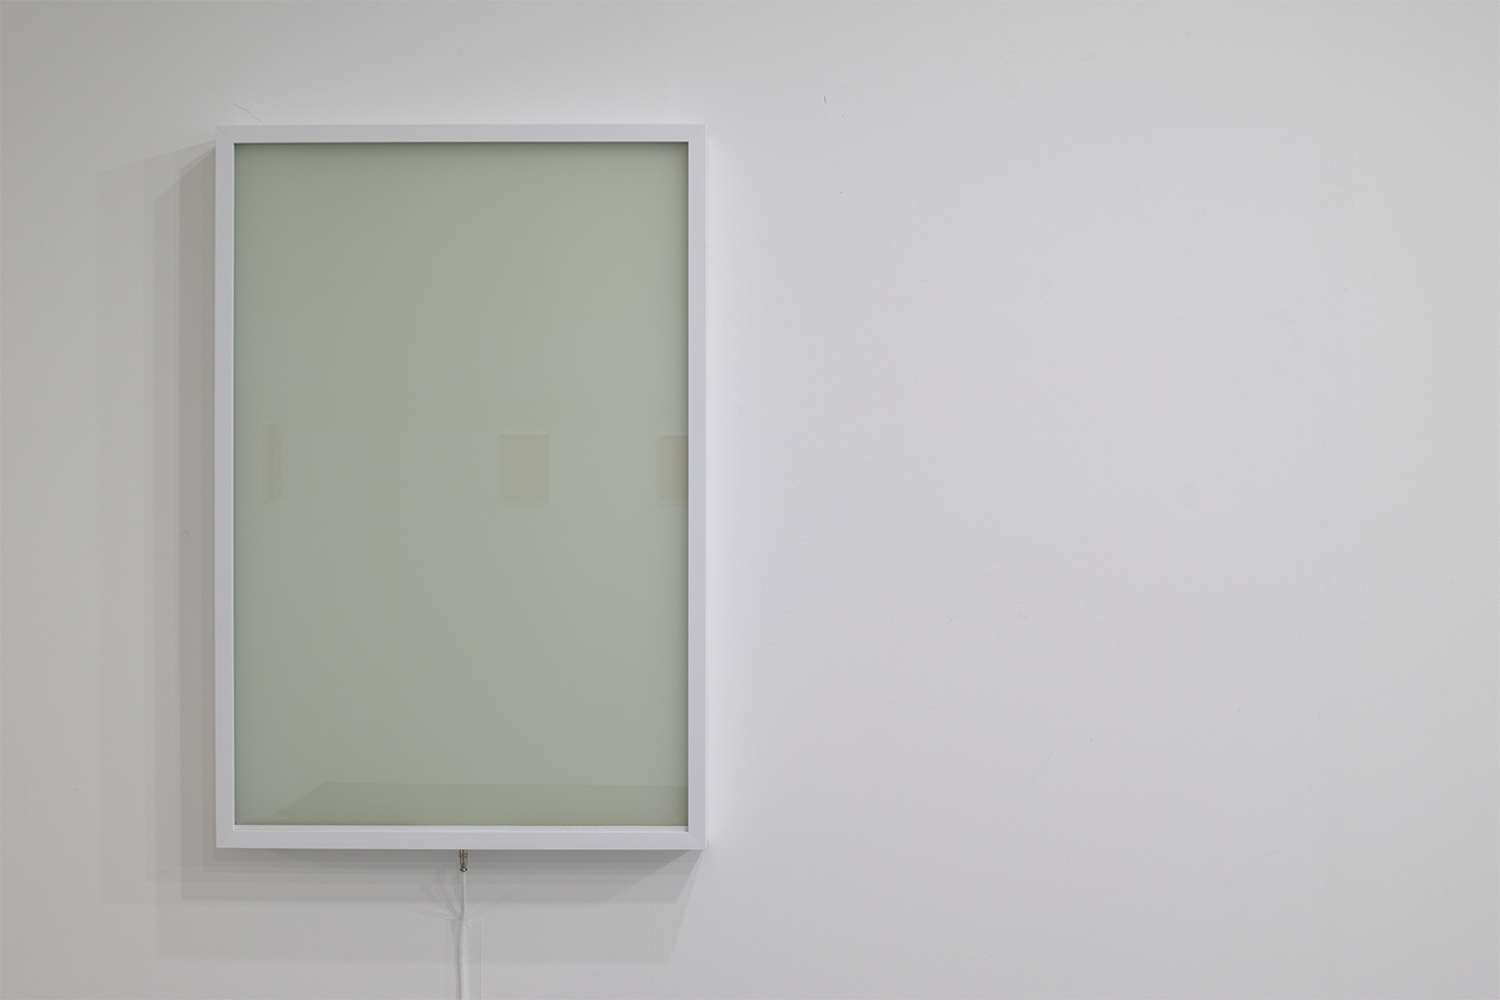 the Void|Glass, liquid crystal, mirror, metal, electronic materials|60 x 90 x 7 cm|2018